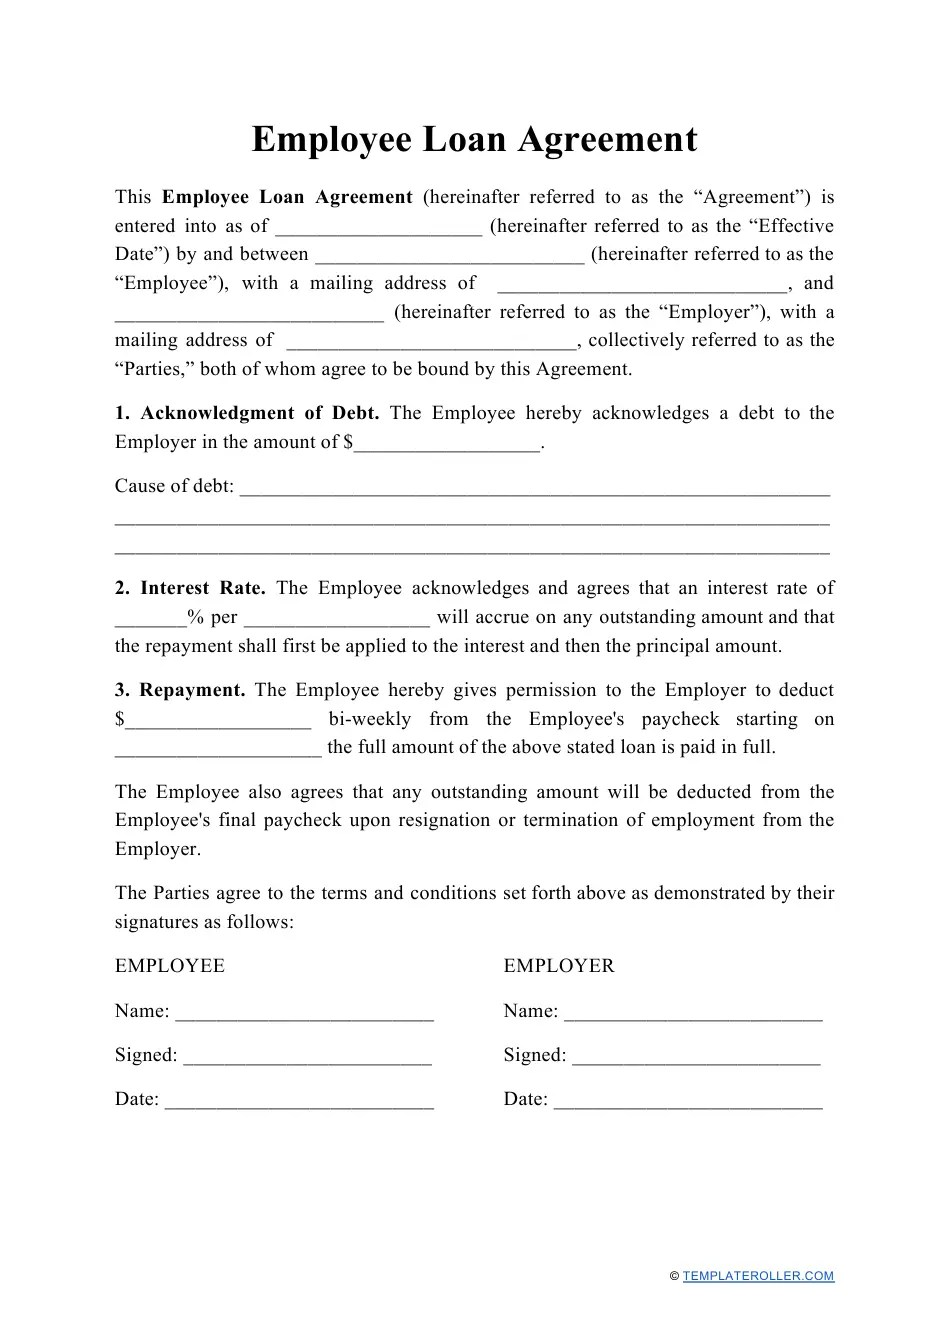 Follow by entering the name and address of the borrower and next the lender. Employee Loan Agreement Template Download Printable Pdf Templateroller